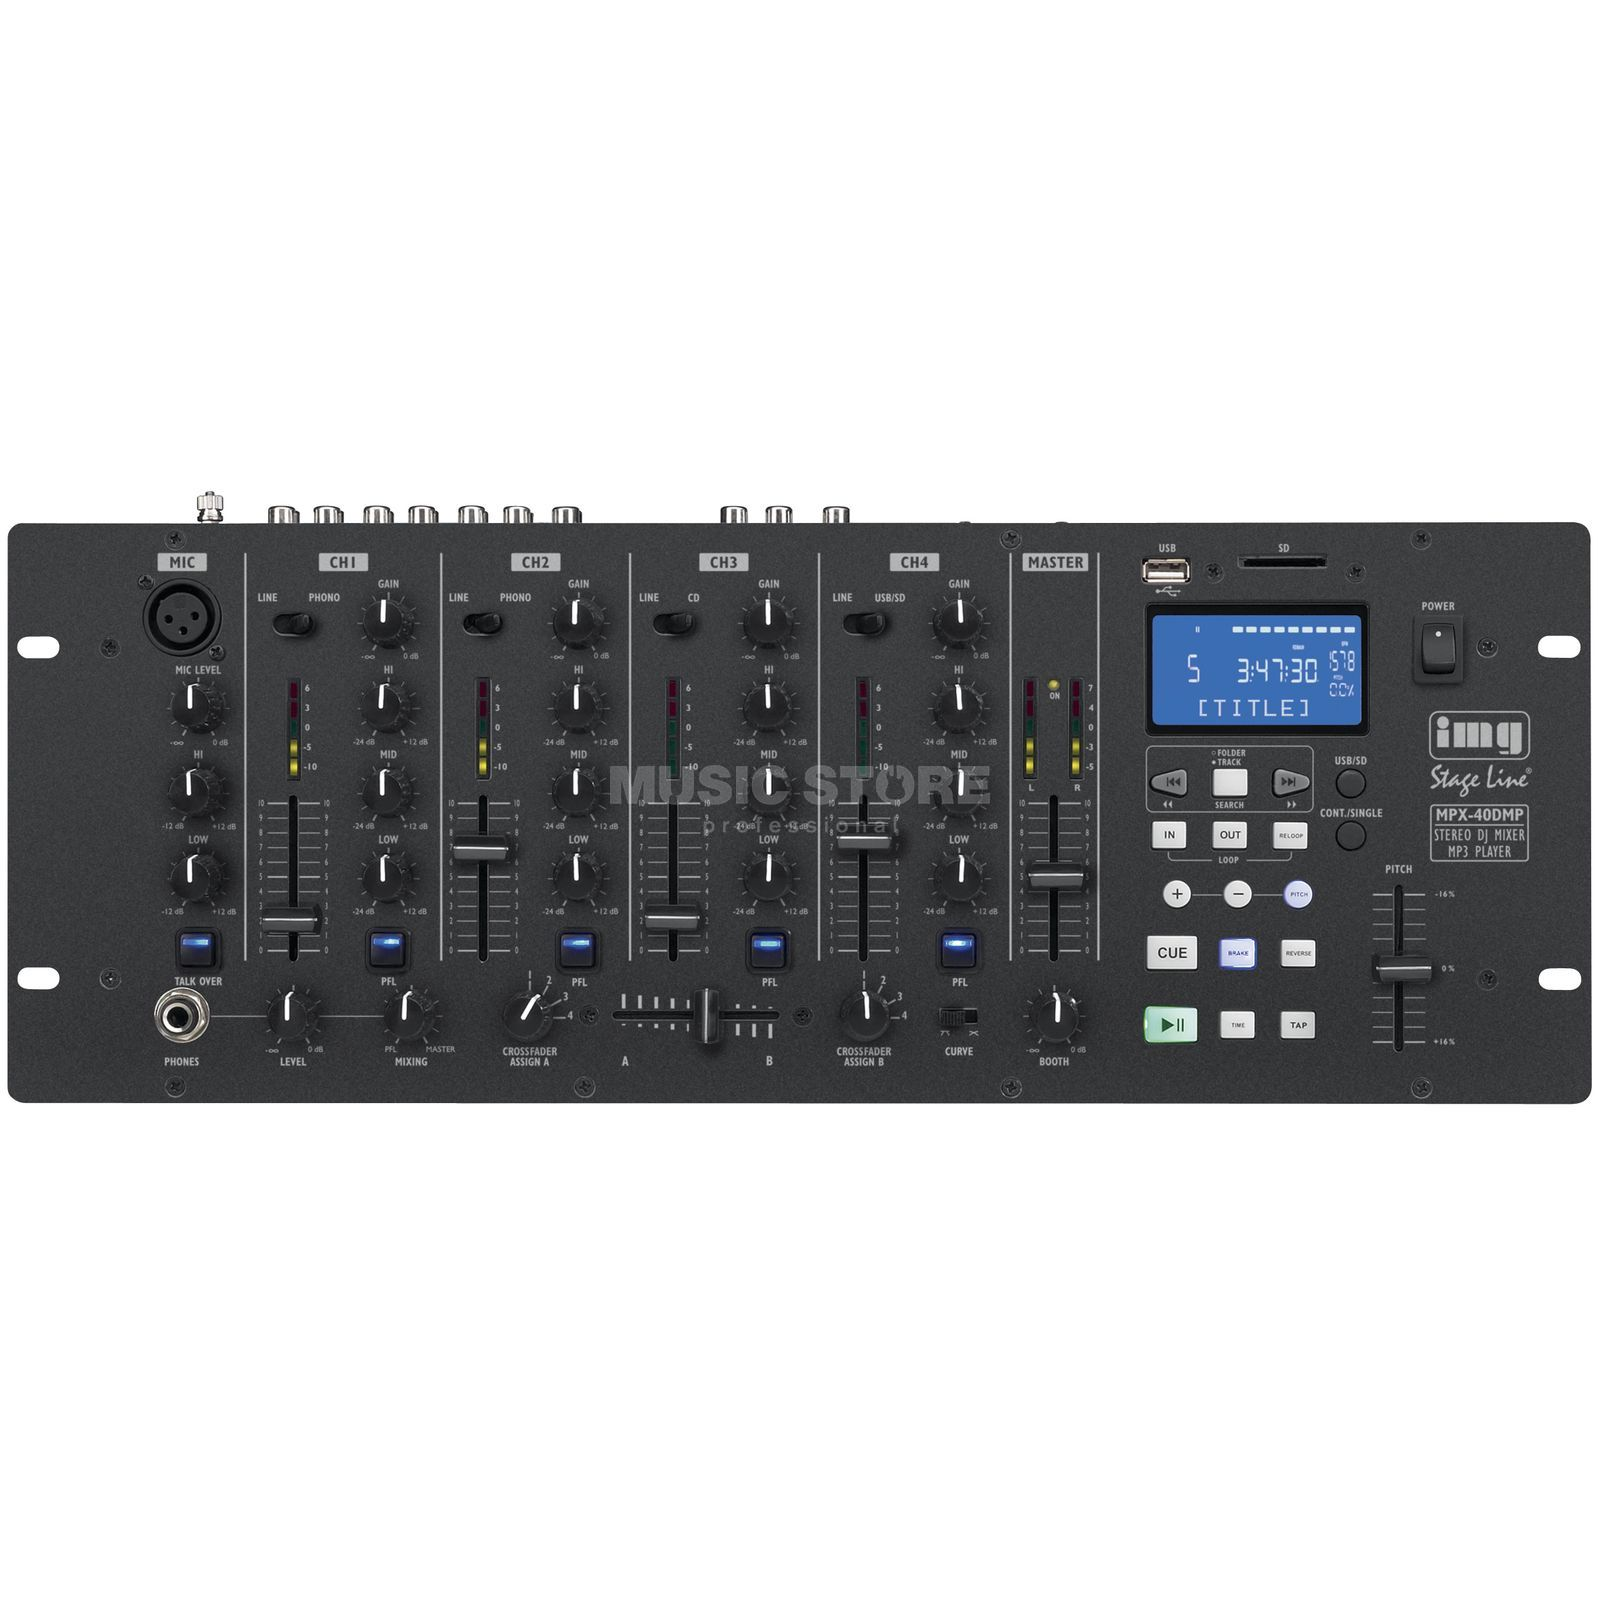 IMG STAGELINE MPX-40DMP DJ-Mixer mit MP3-Player Product Image